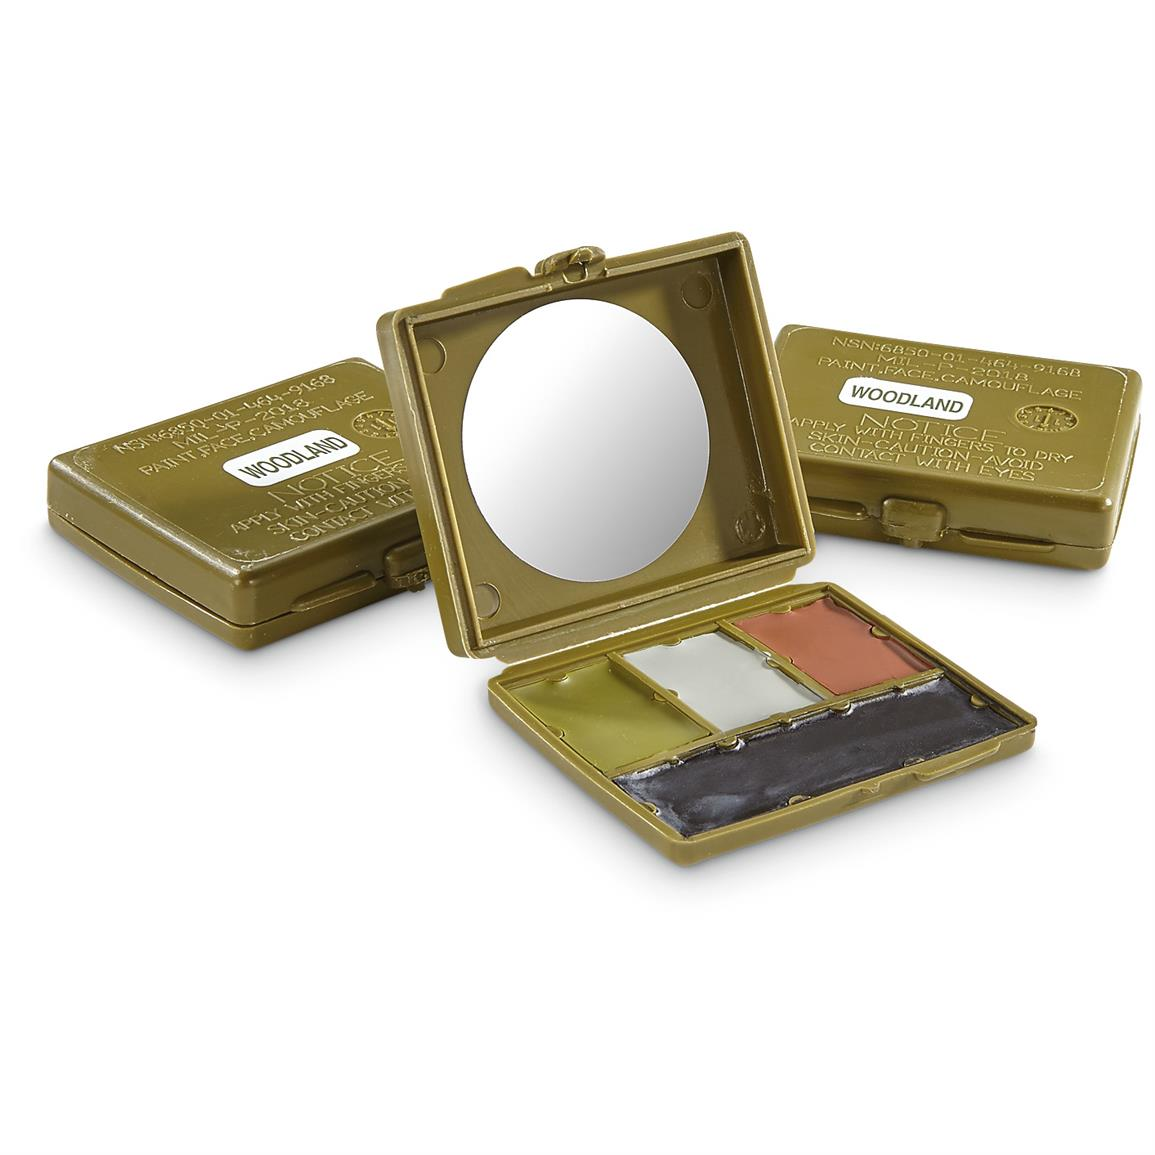 3-Pk. of New U.S. Military Issue Face Paint Kits.